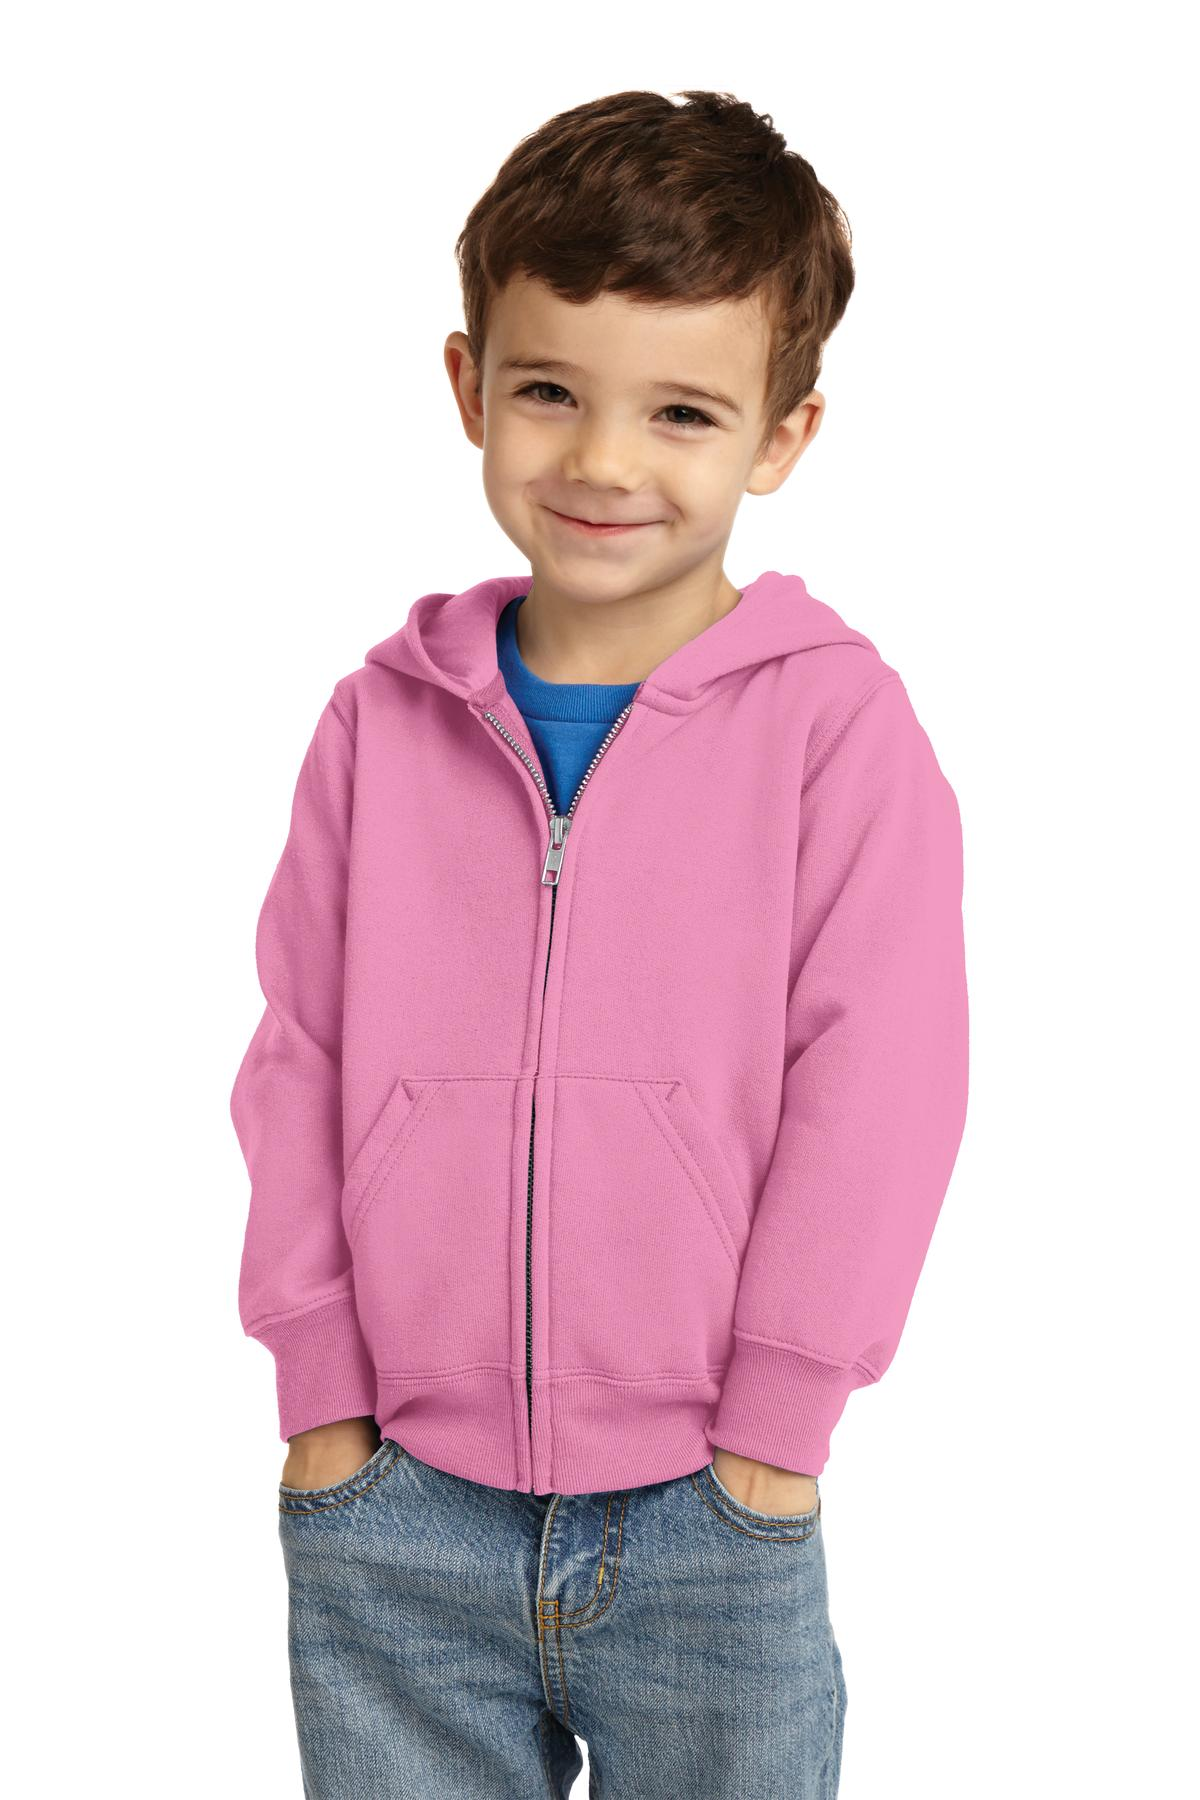 Port & Company ®  Toddler Core Fleece Full-Zip Hooded Sweatshirt. CAR78TZH - Candy Pink